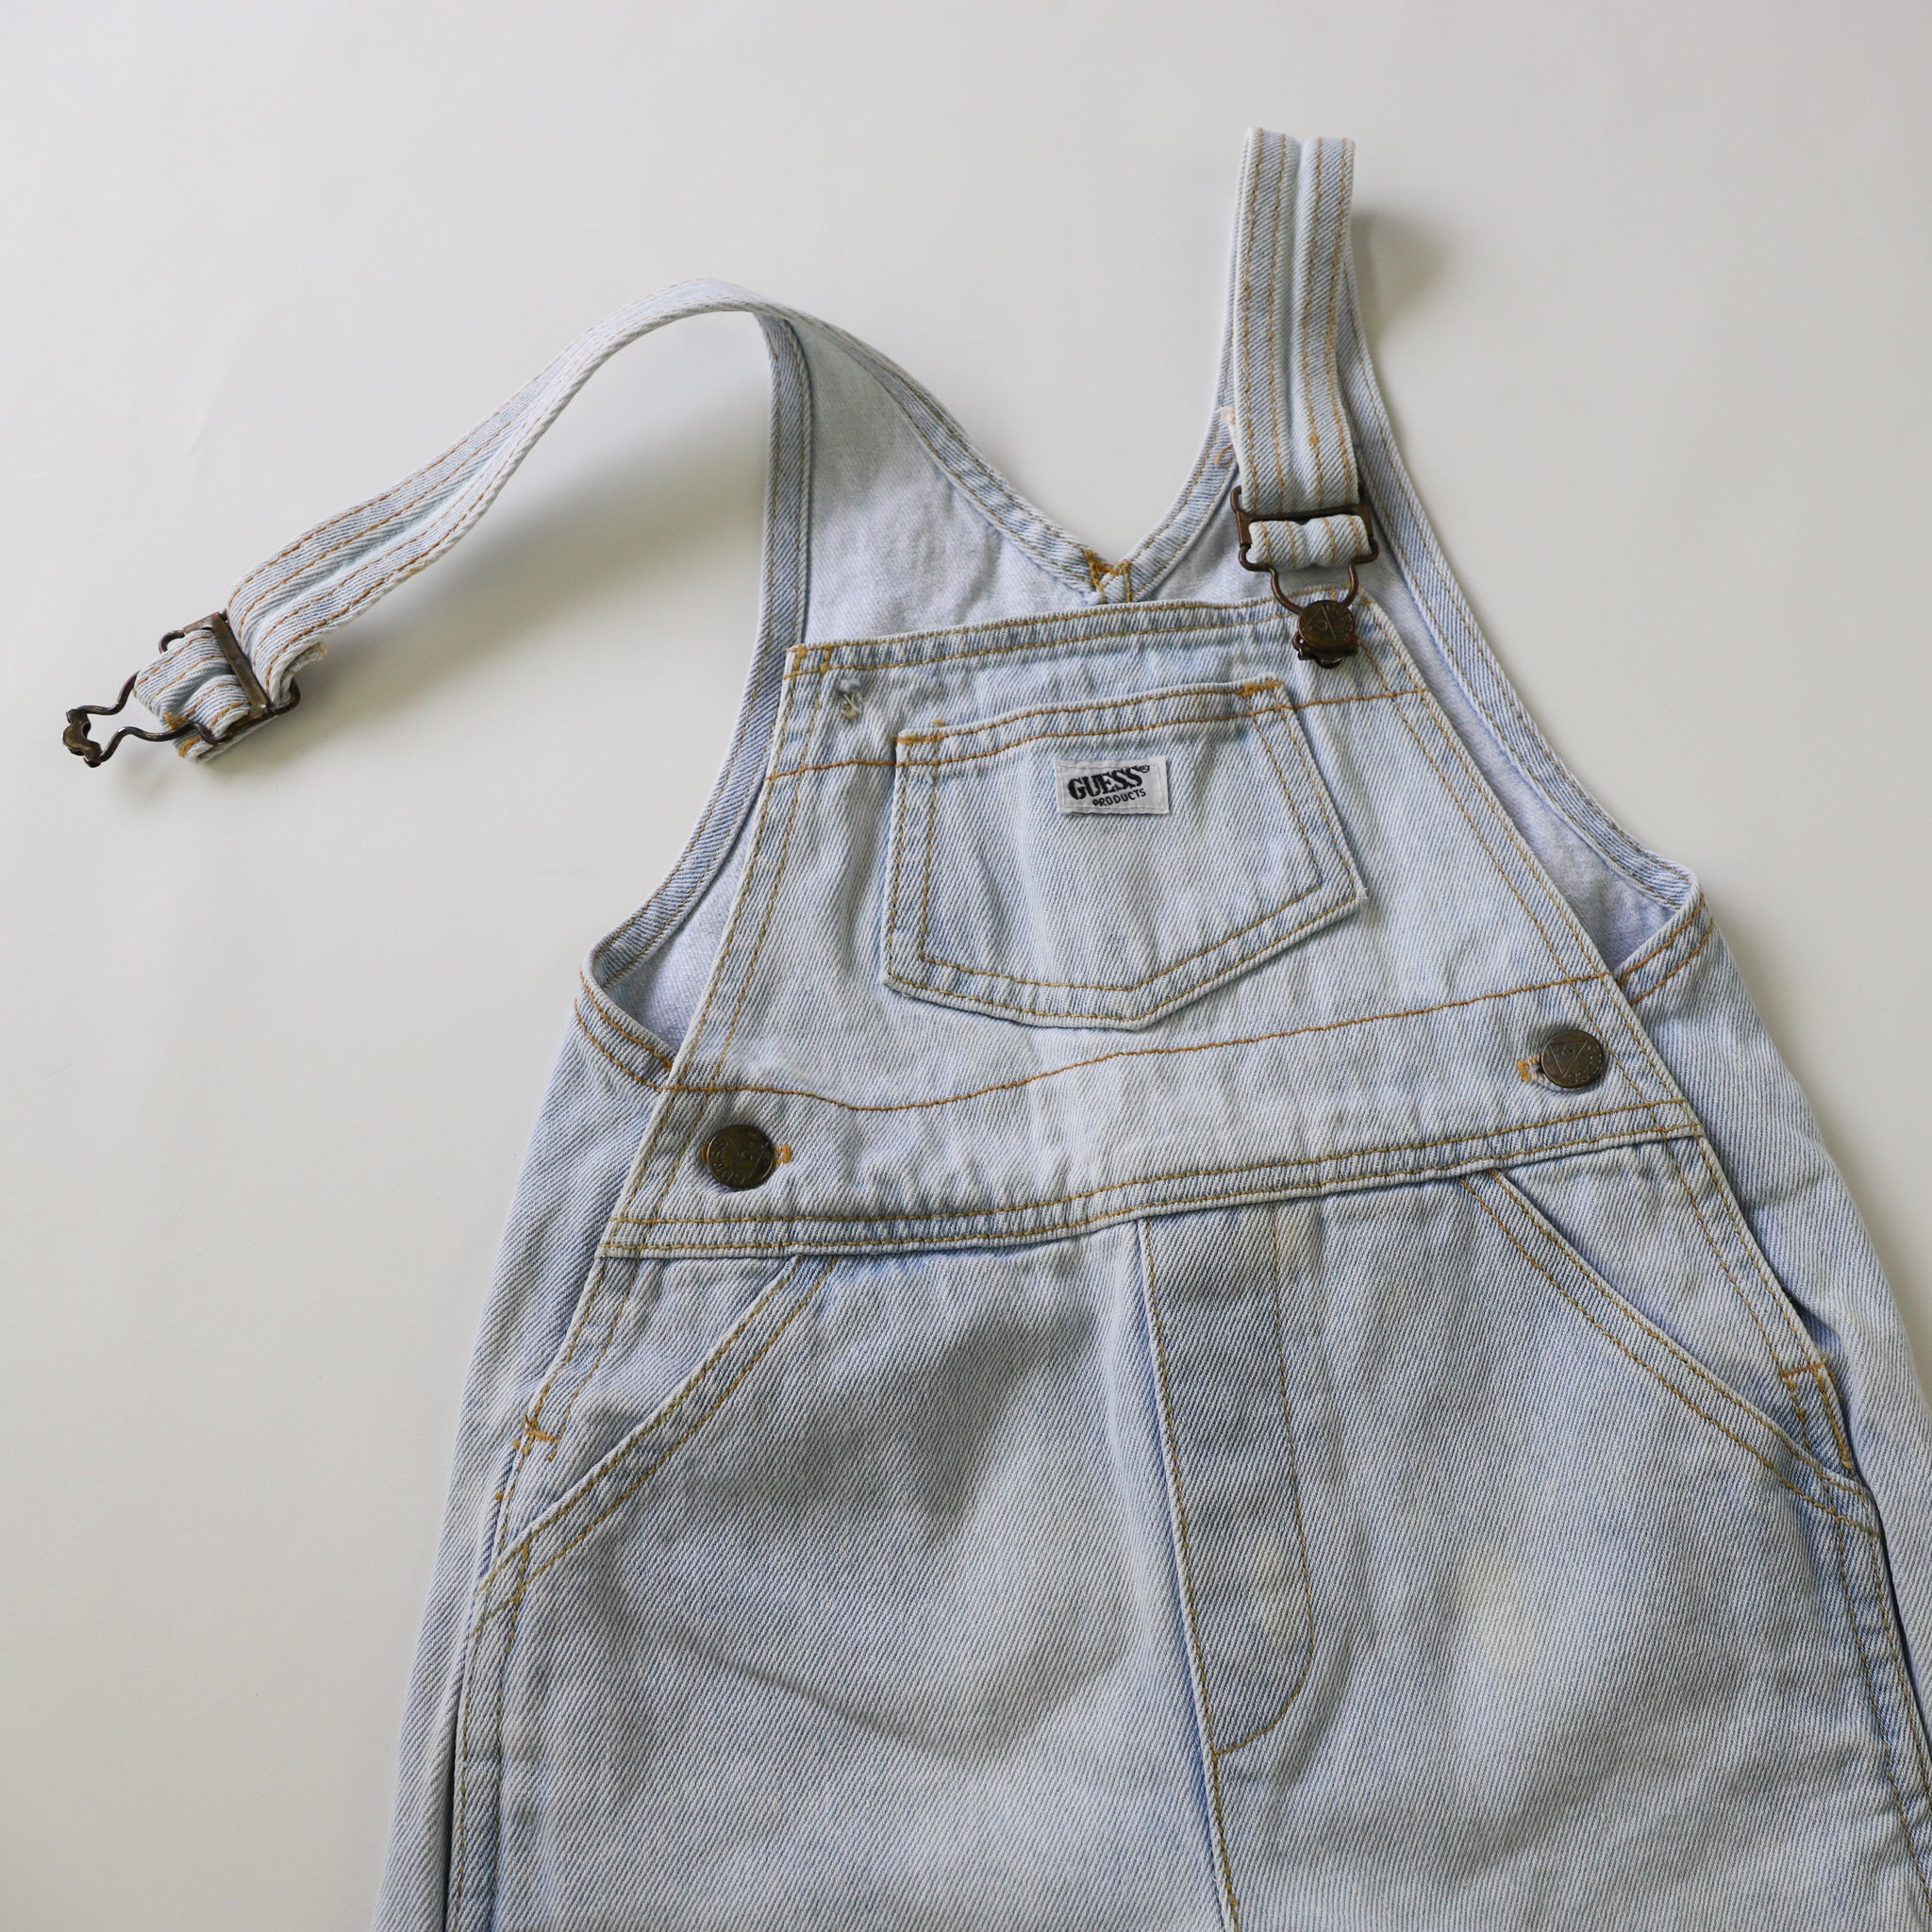 Vintage Guess Light Denim Shortalls Size 2Y